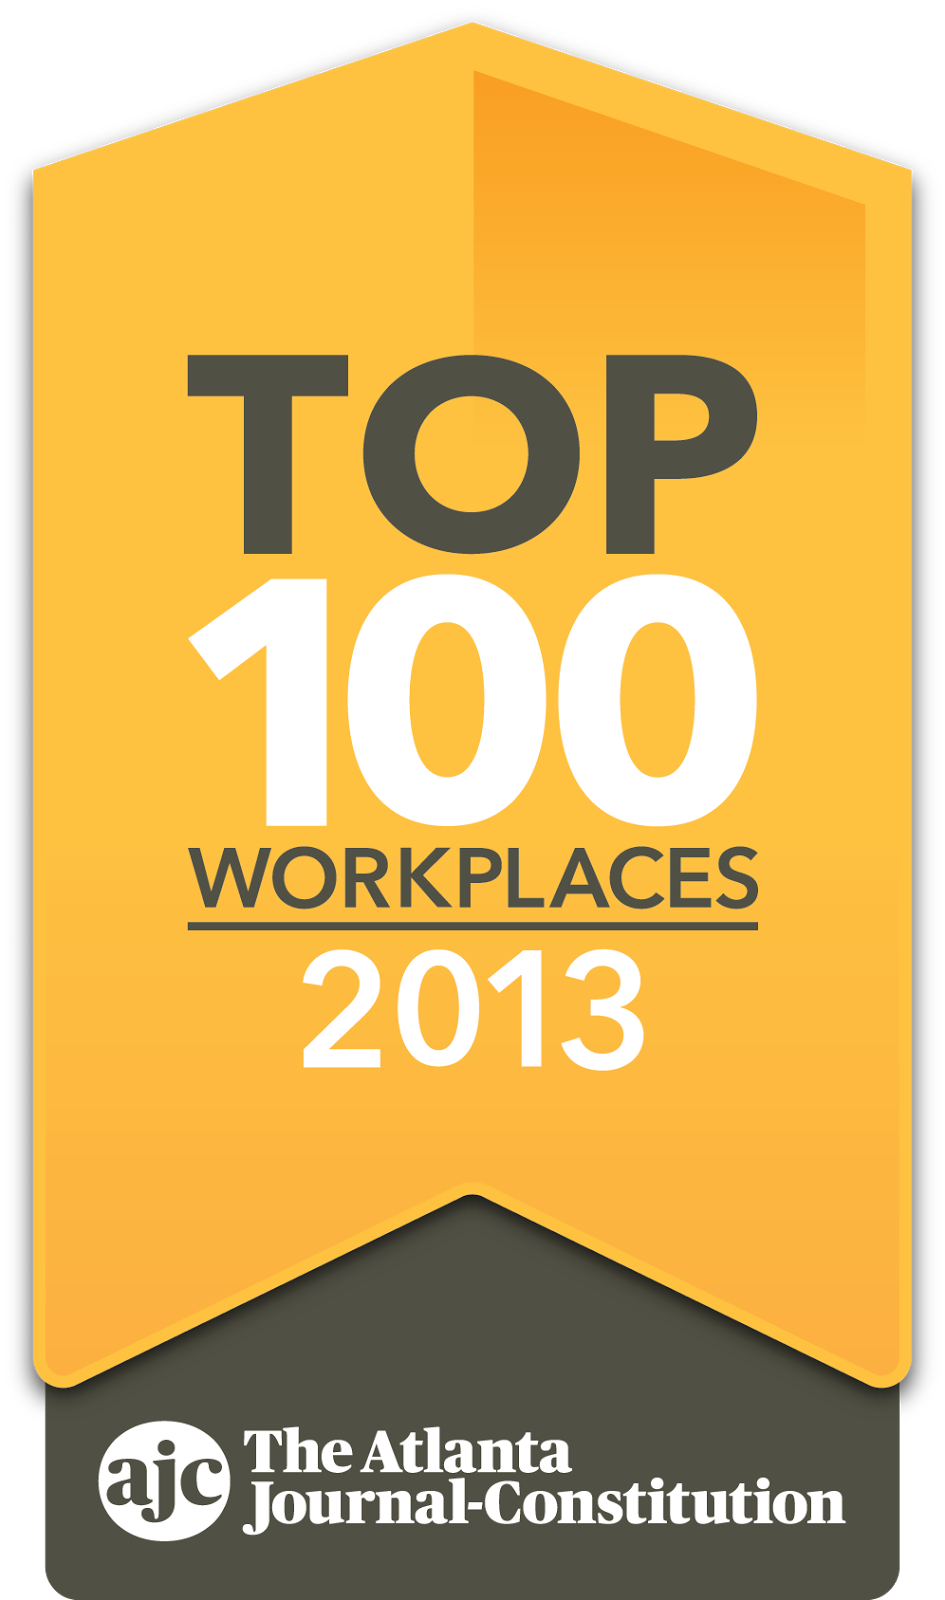 AJC-top-workplaces-award-logo-2013